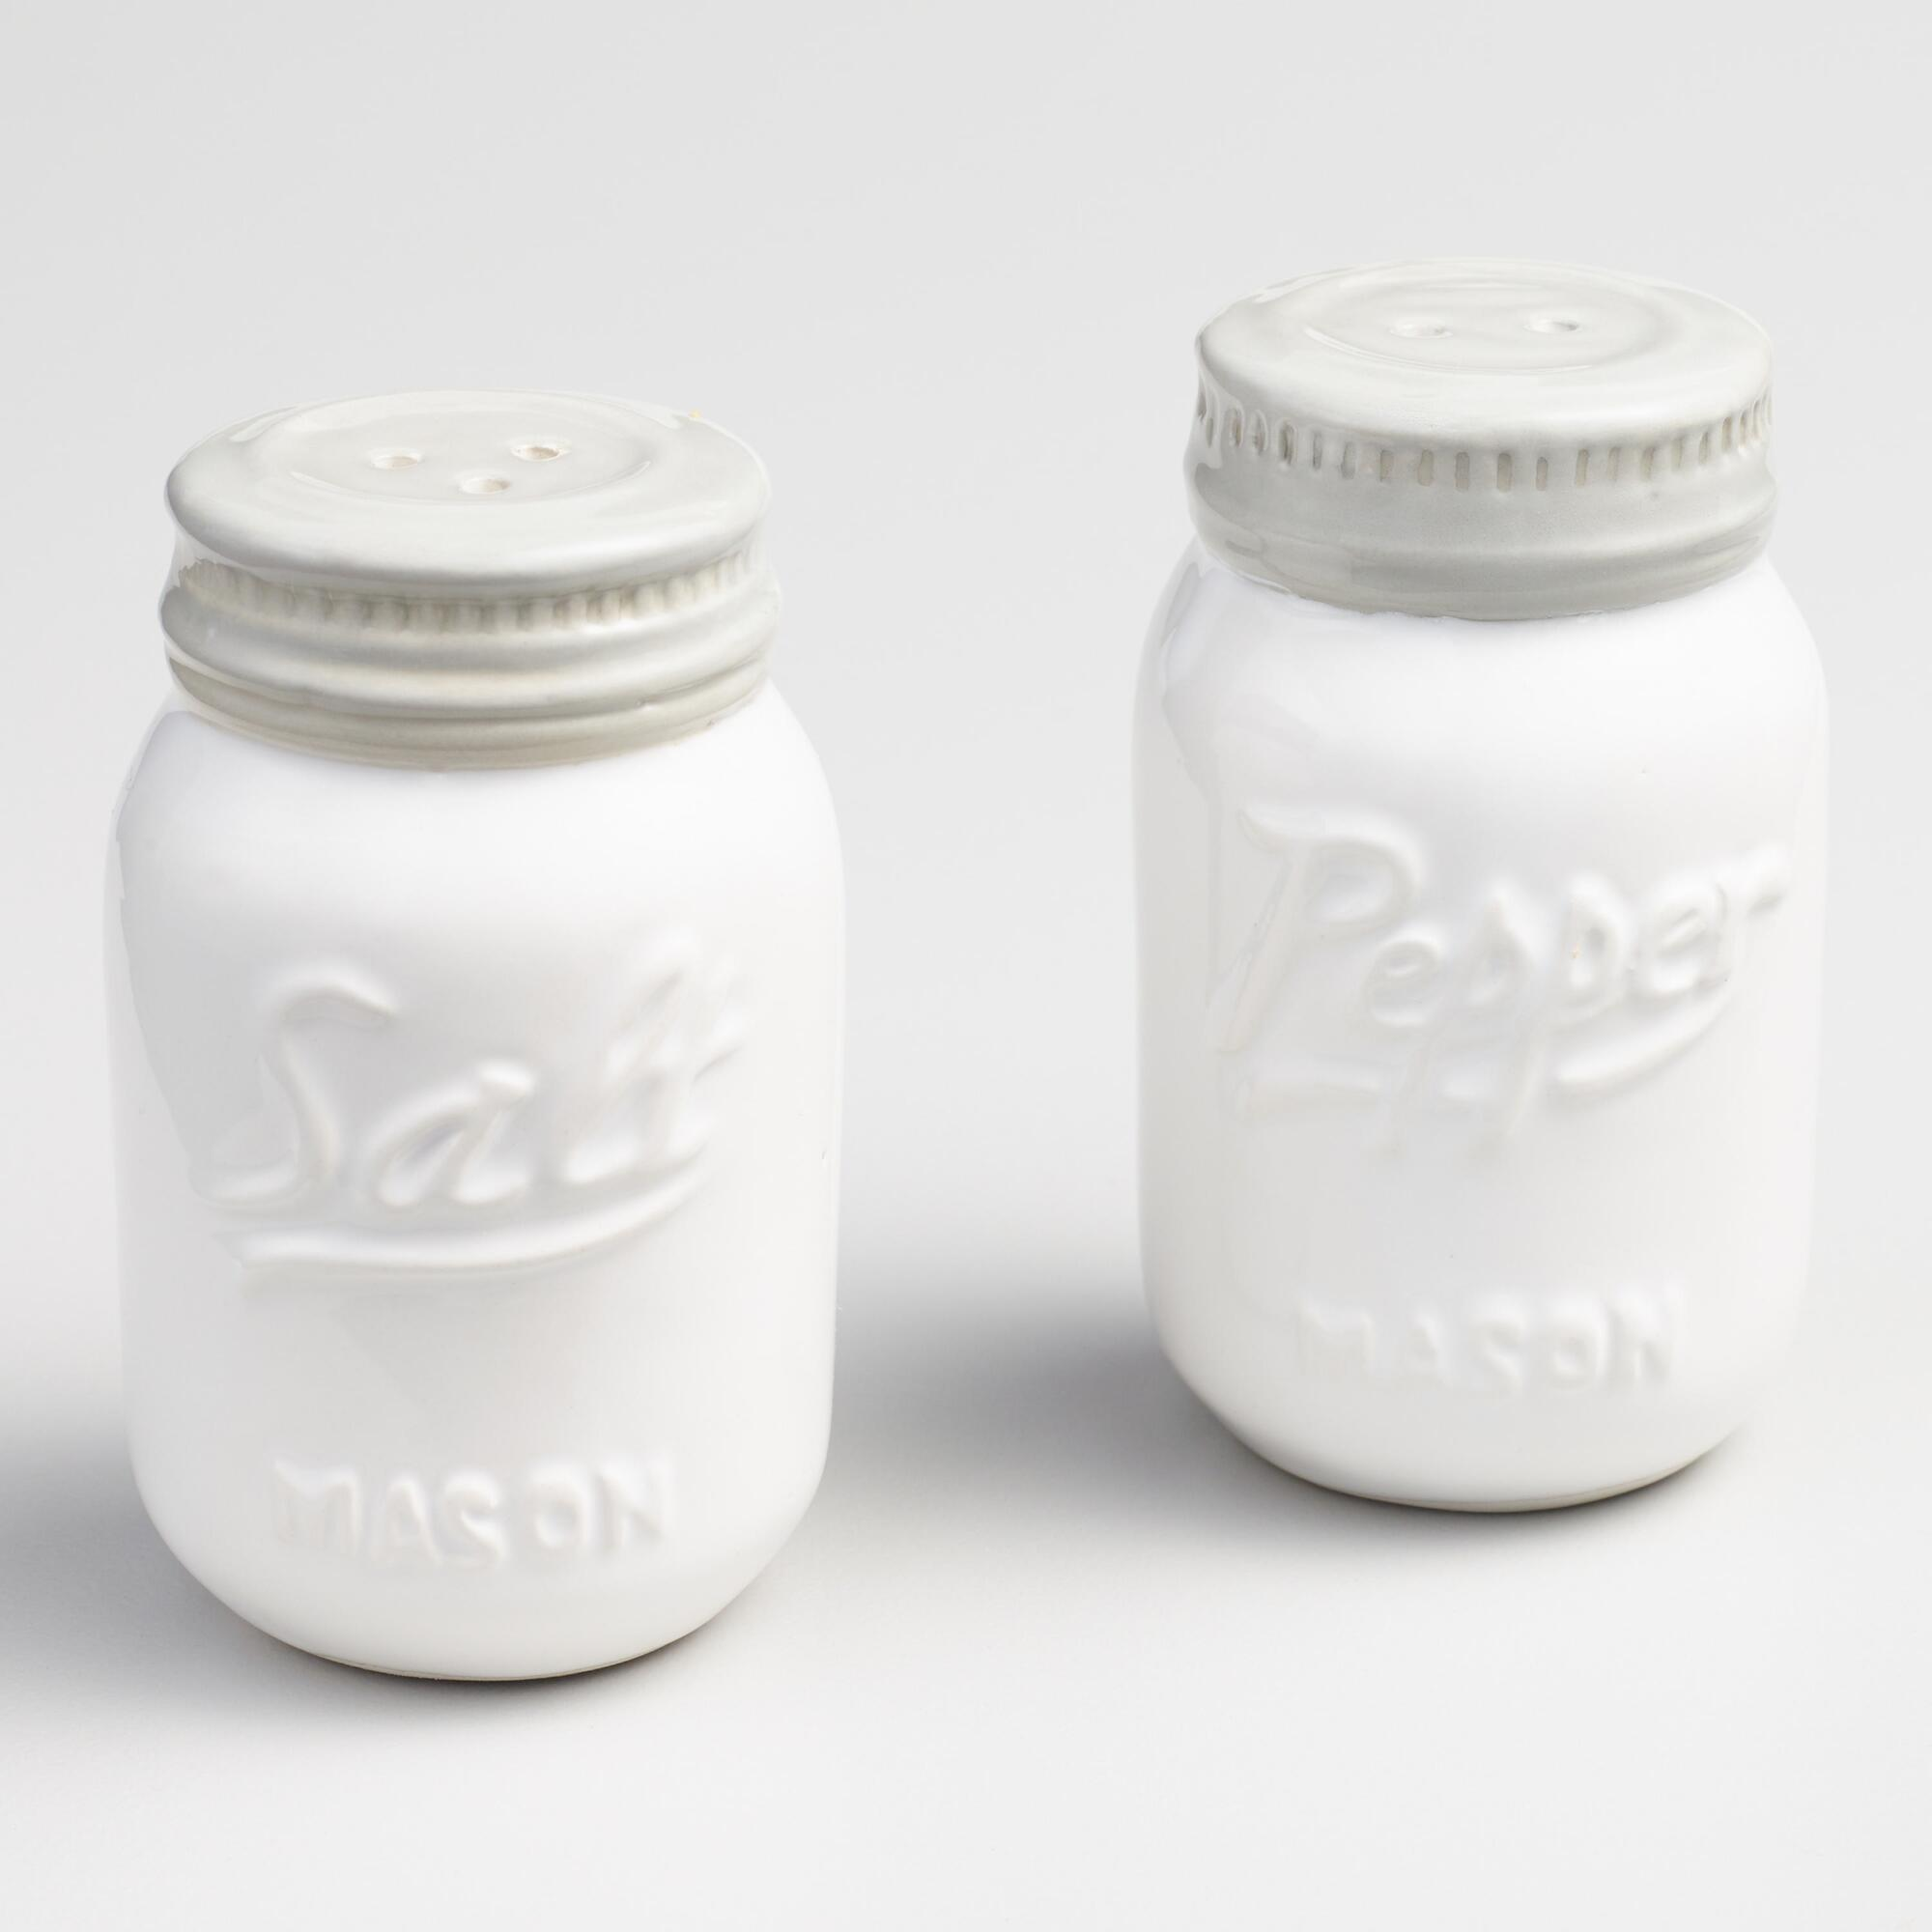 White Mason Jar Ceramic Salt And Pepper Shaker Set World